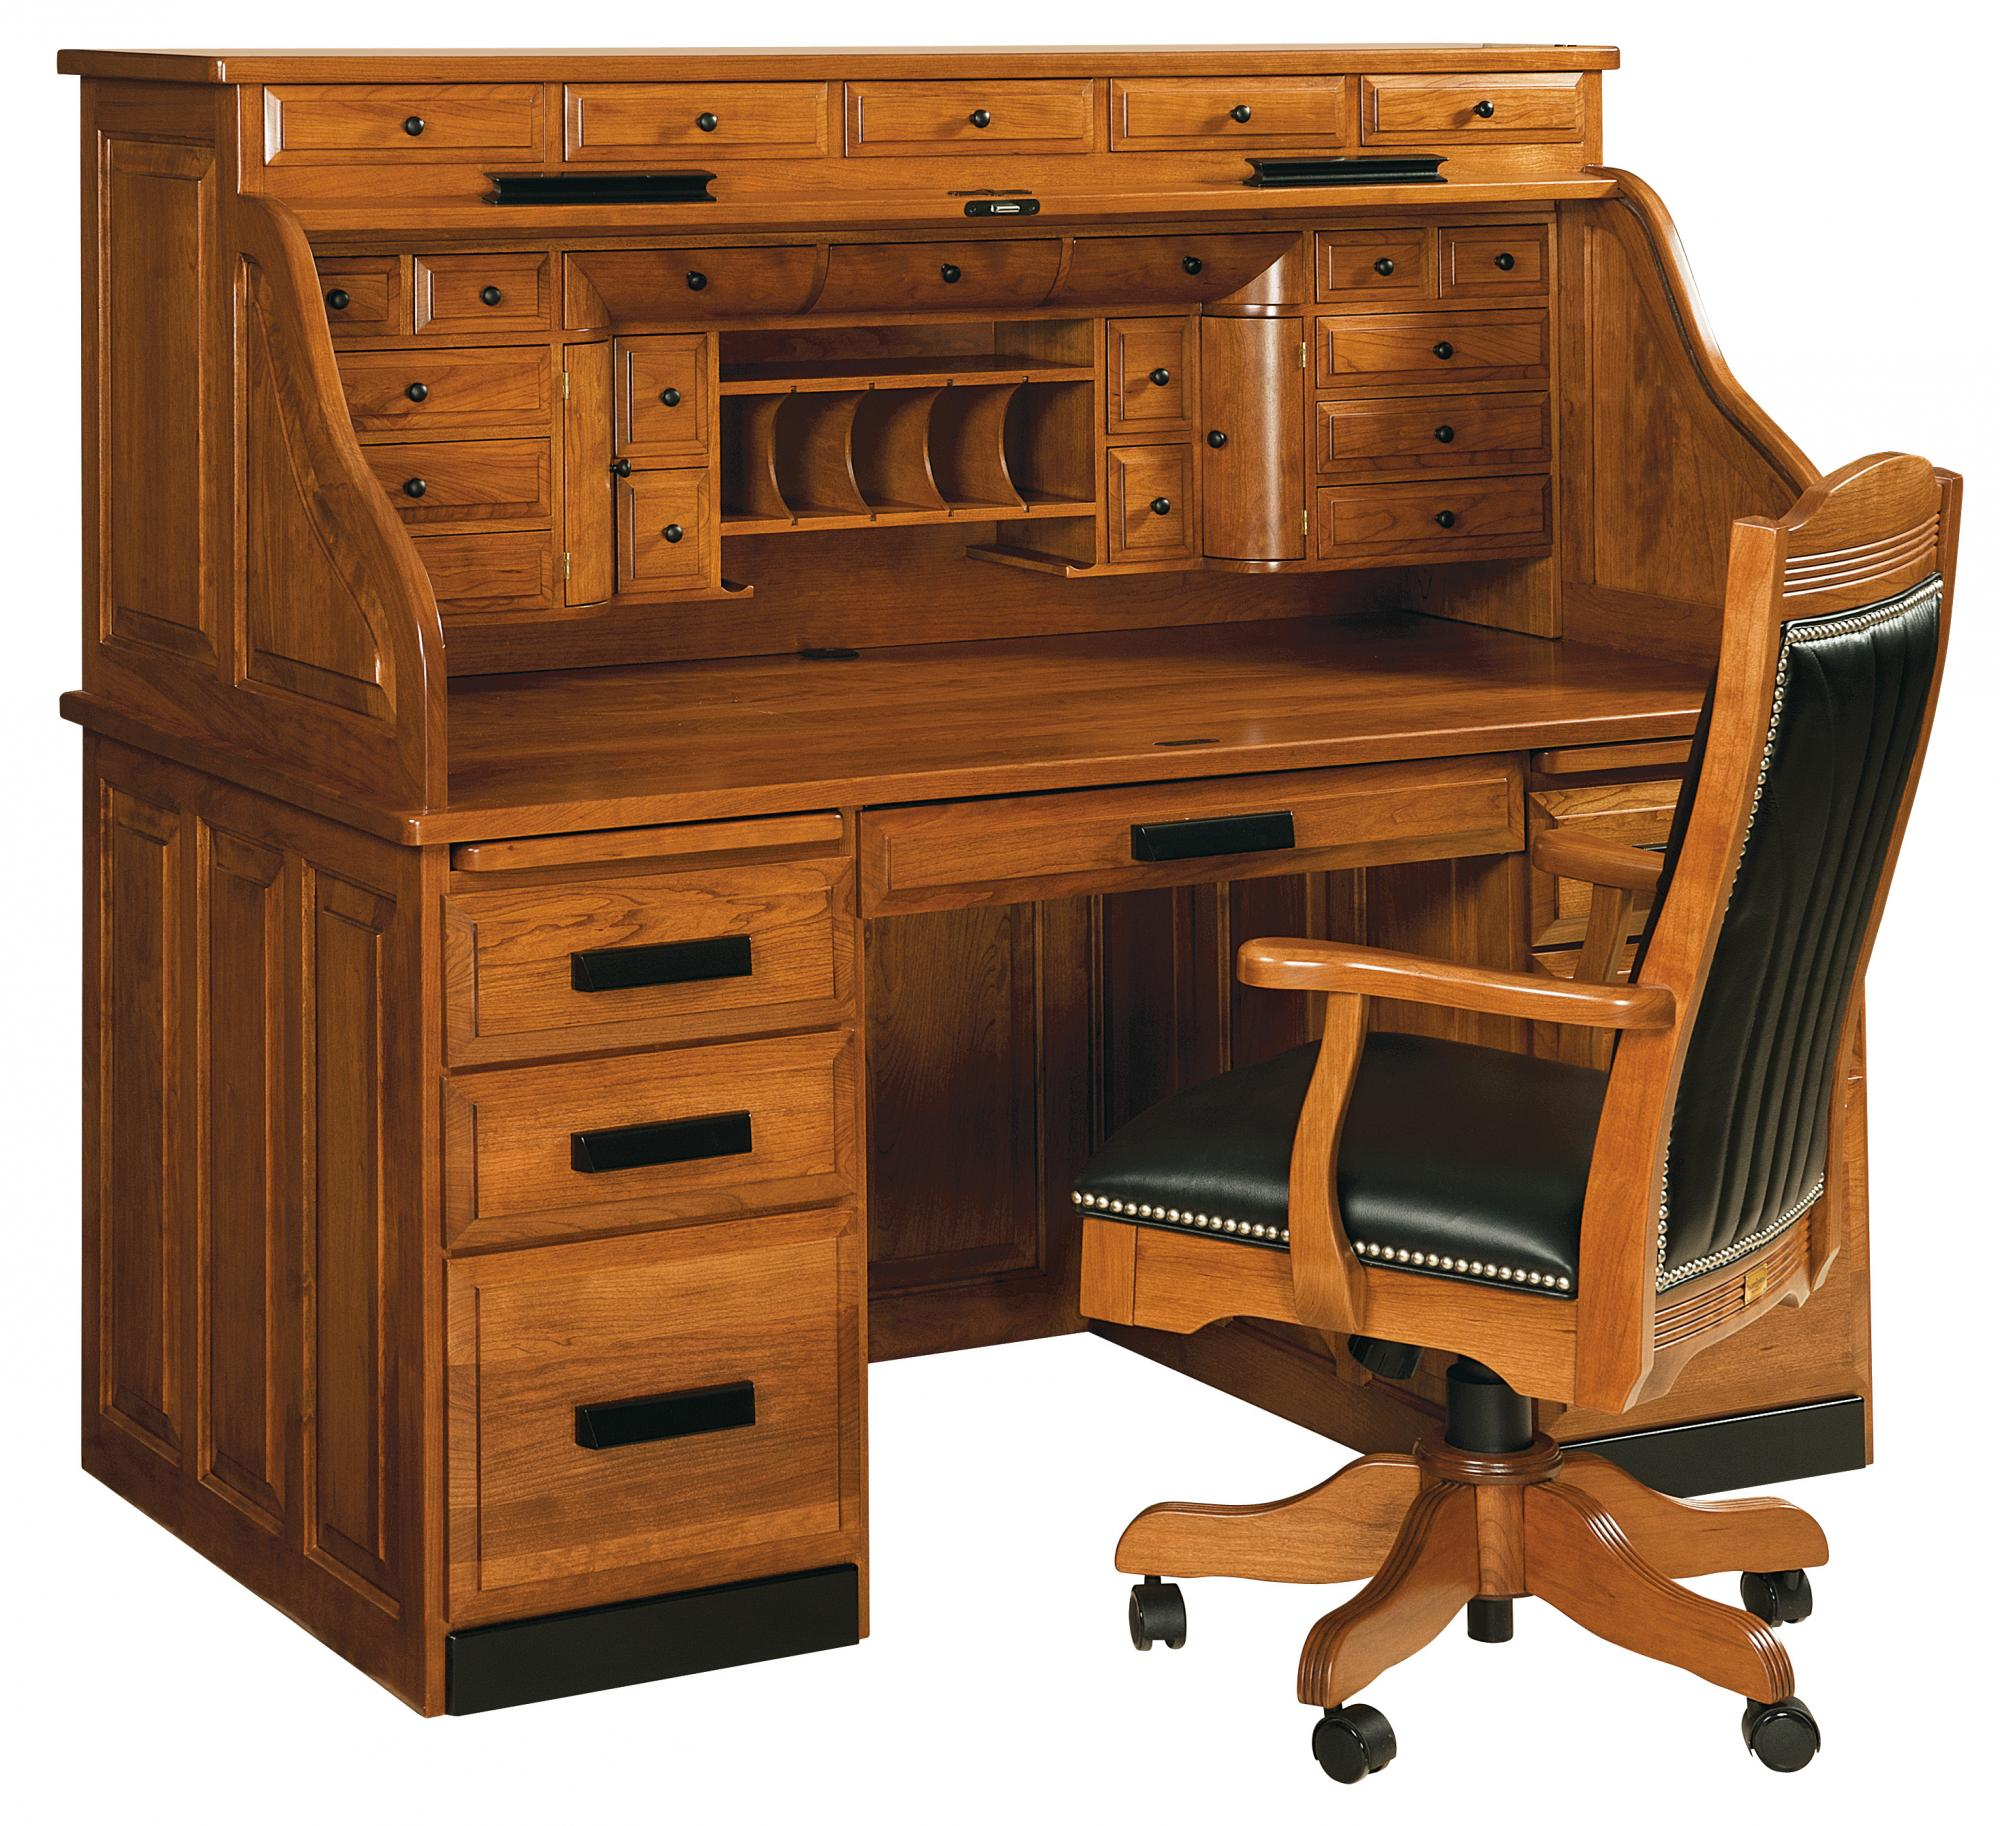 Classic Deluxe Roll Top Desk Amish Furniture Store